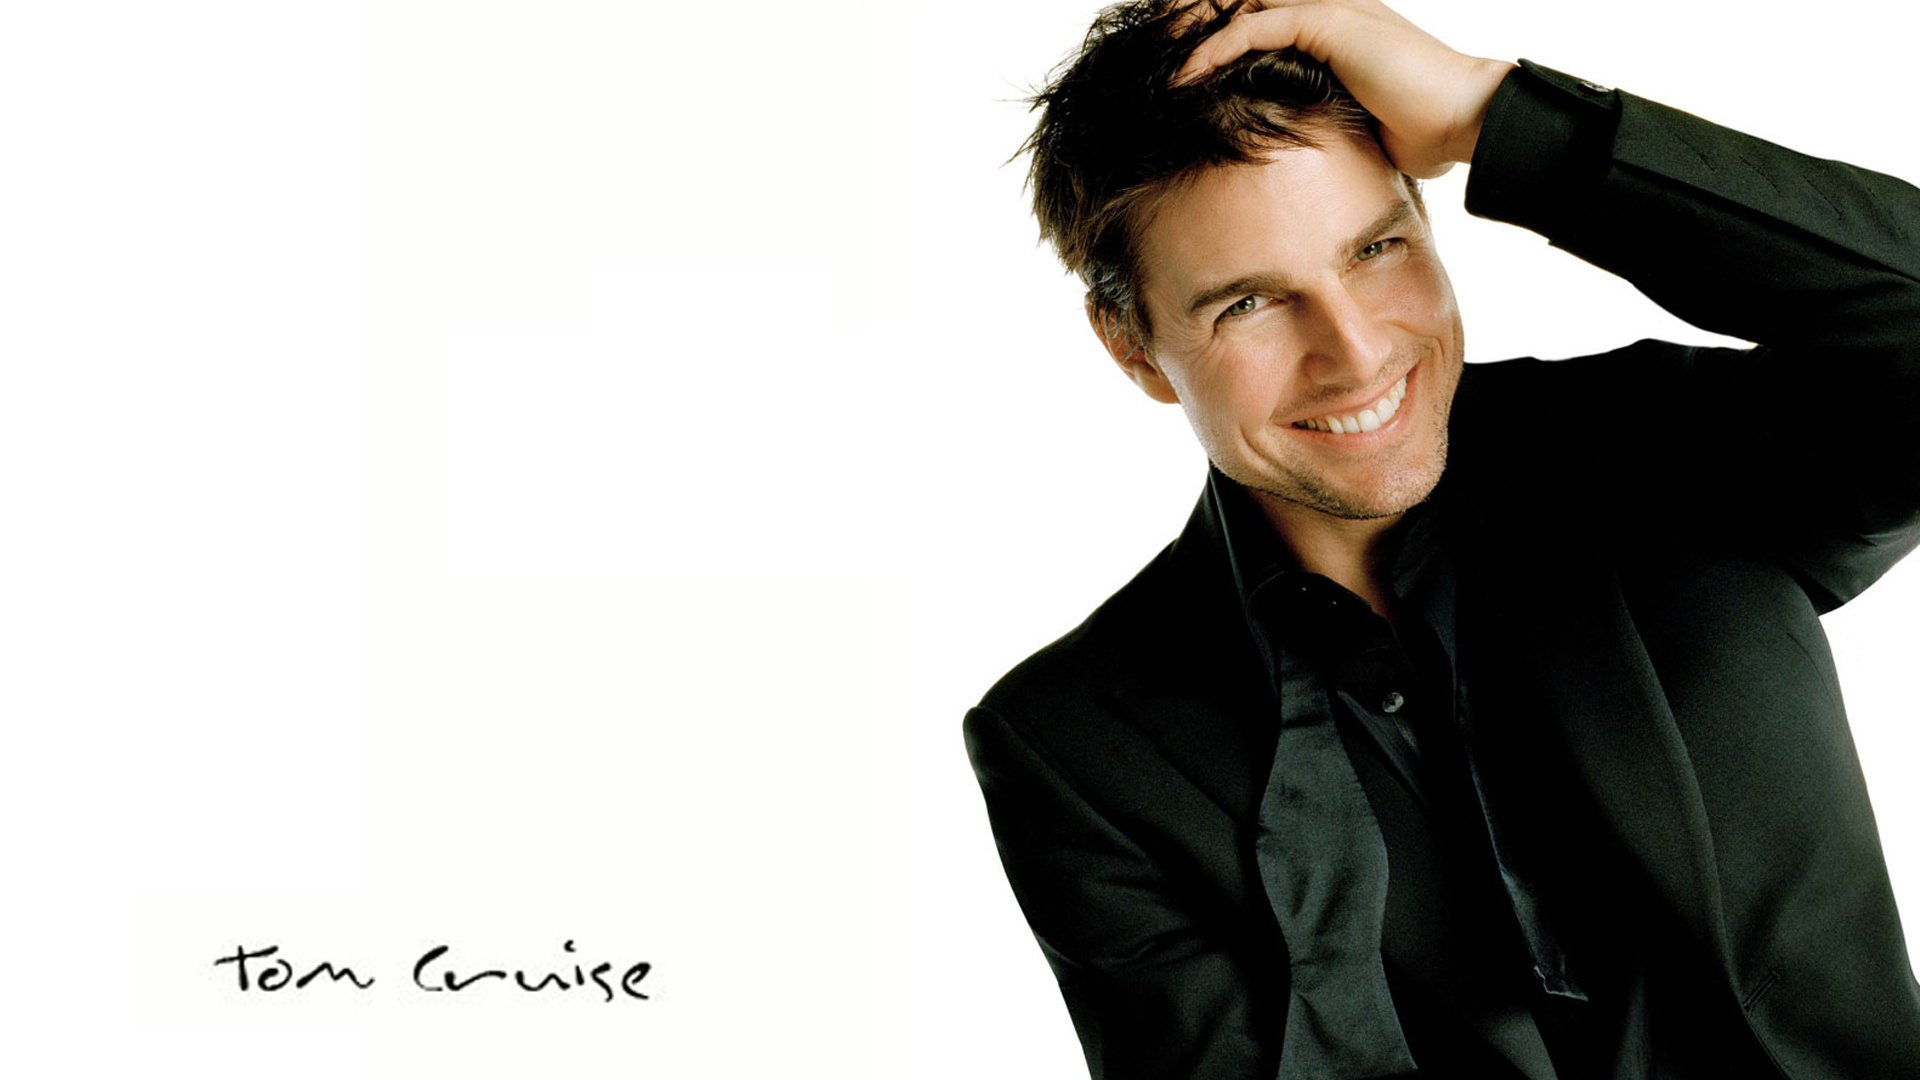 173 Tom Cruise HD Wallpapers Background Images 1920x1080